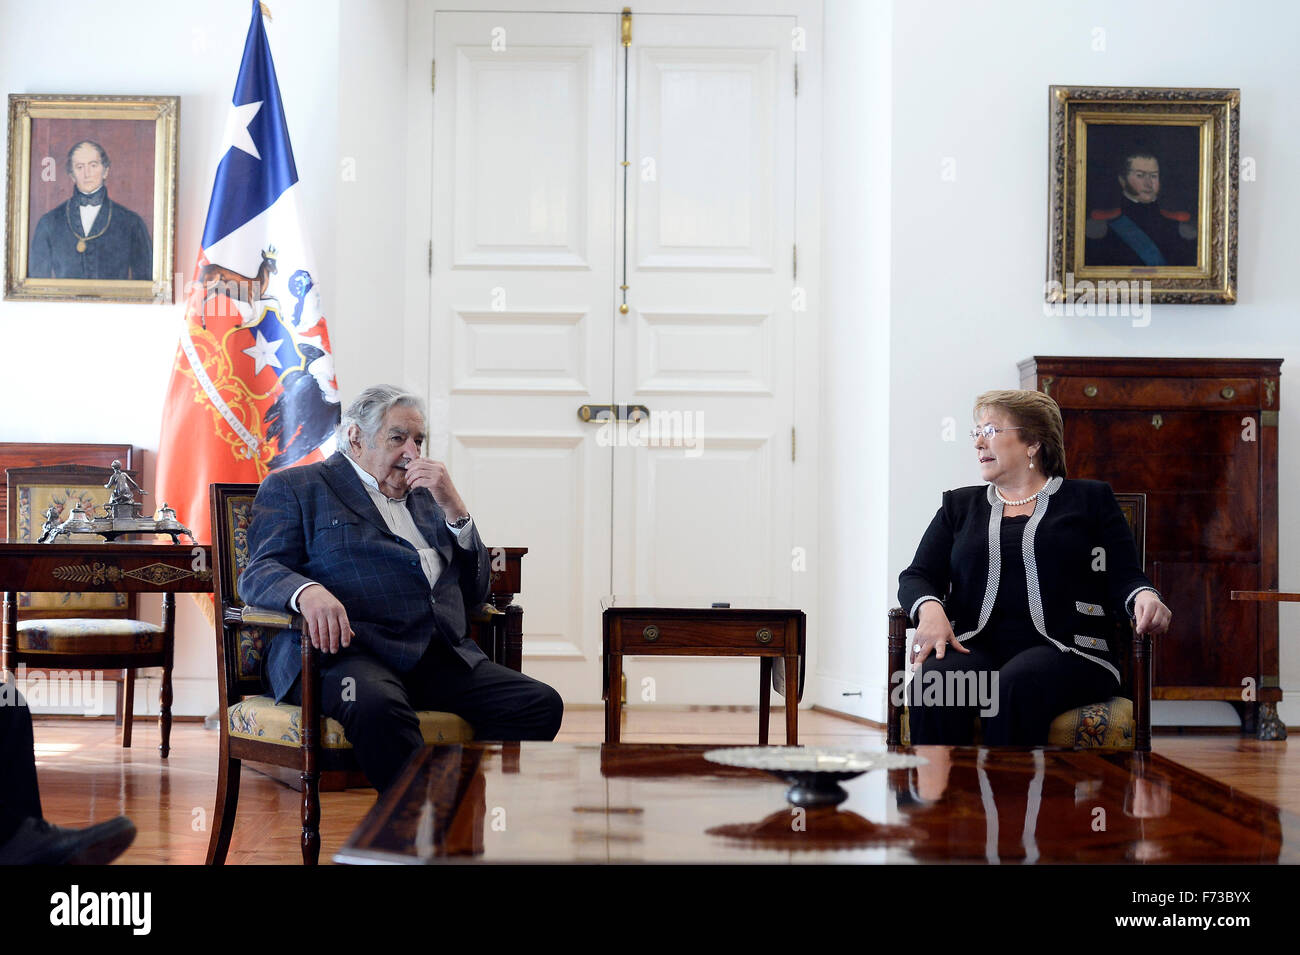 Santiago, Chile. 24th Nov, 2015. Image provided by Chile's Presidency shows Chilean President Michelle Bachelet - Stock Image